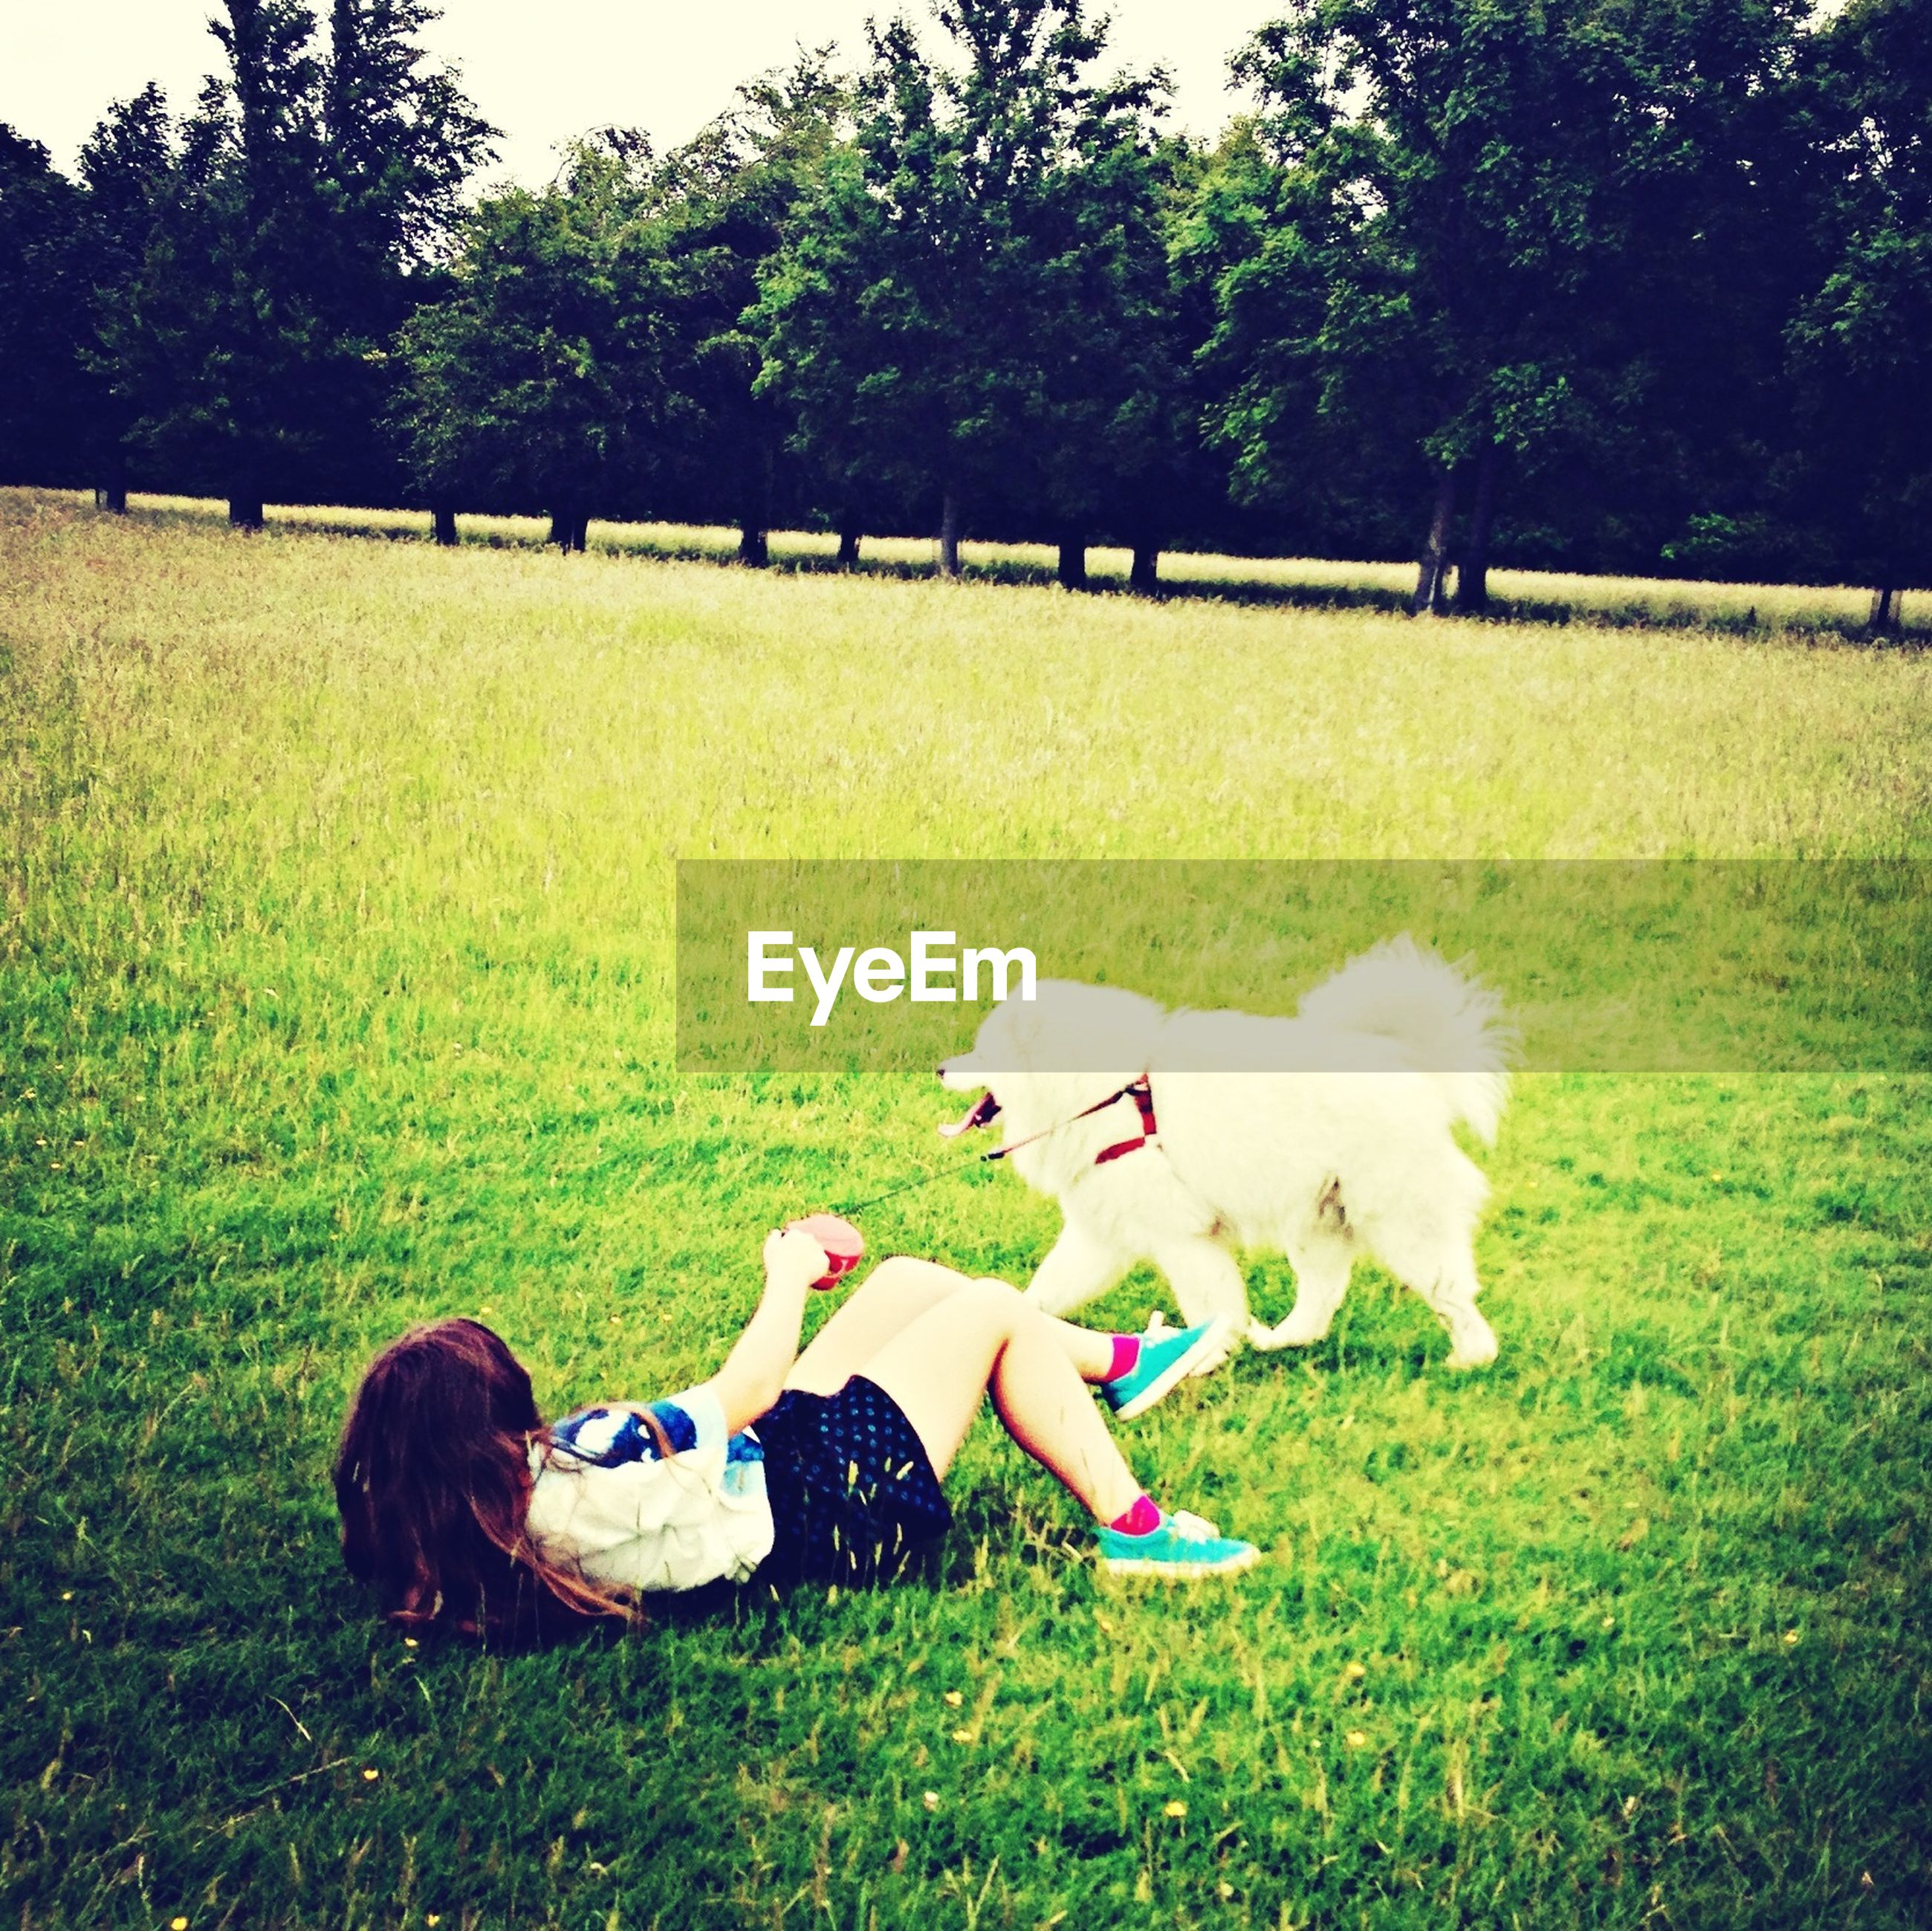 grass, grassy, field, leisure activity, lifestyles, green color, relaxation, sitting, tree, person, park - man made space, men, lawn, domestic animals, grassland, relaxing, togetherness, dog